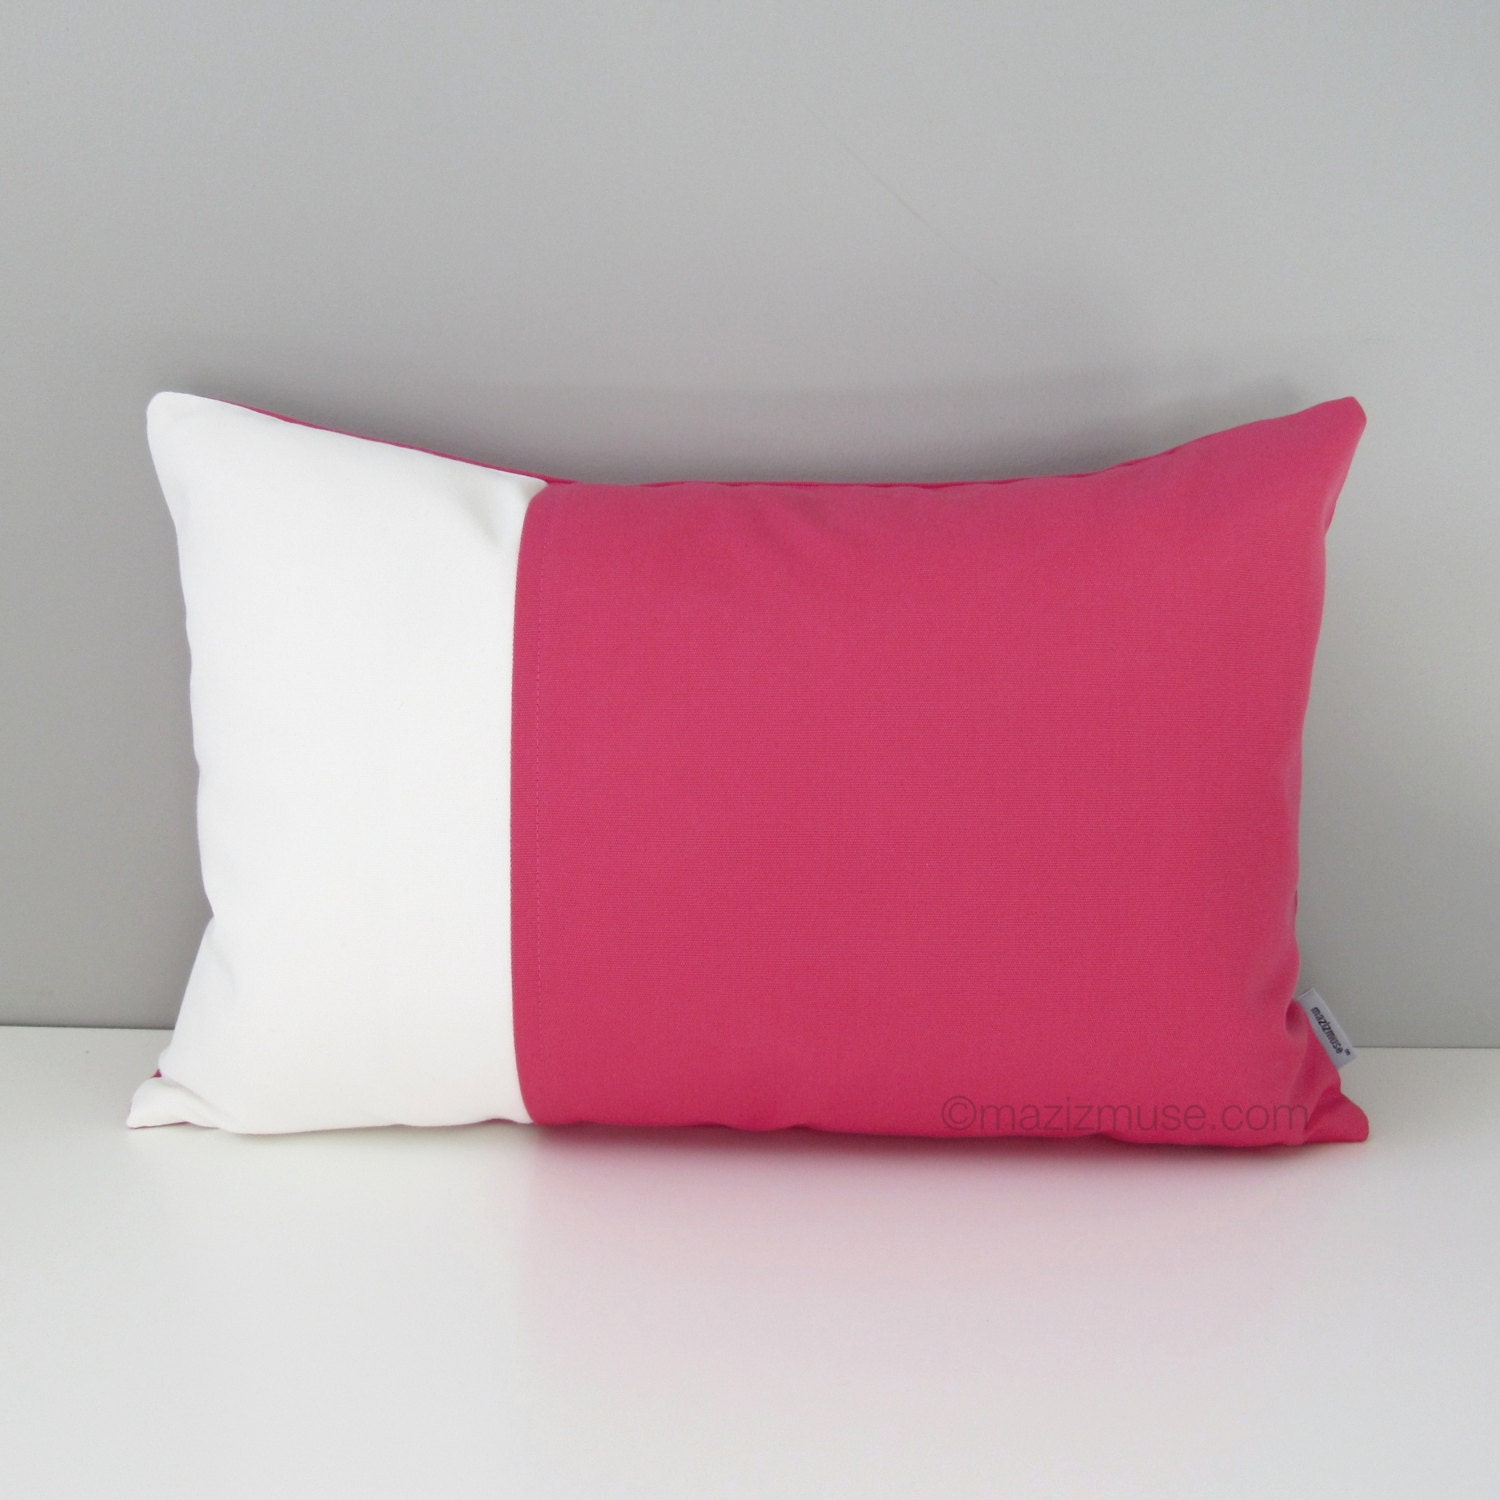 Decorative Pillow Pink : Pink & White Outdoor Pillow Cover Decorative Pillow Case